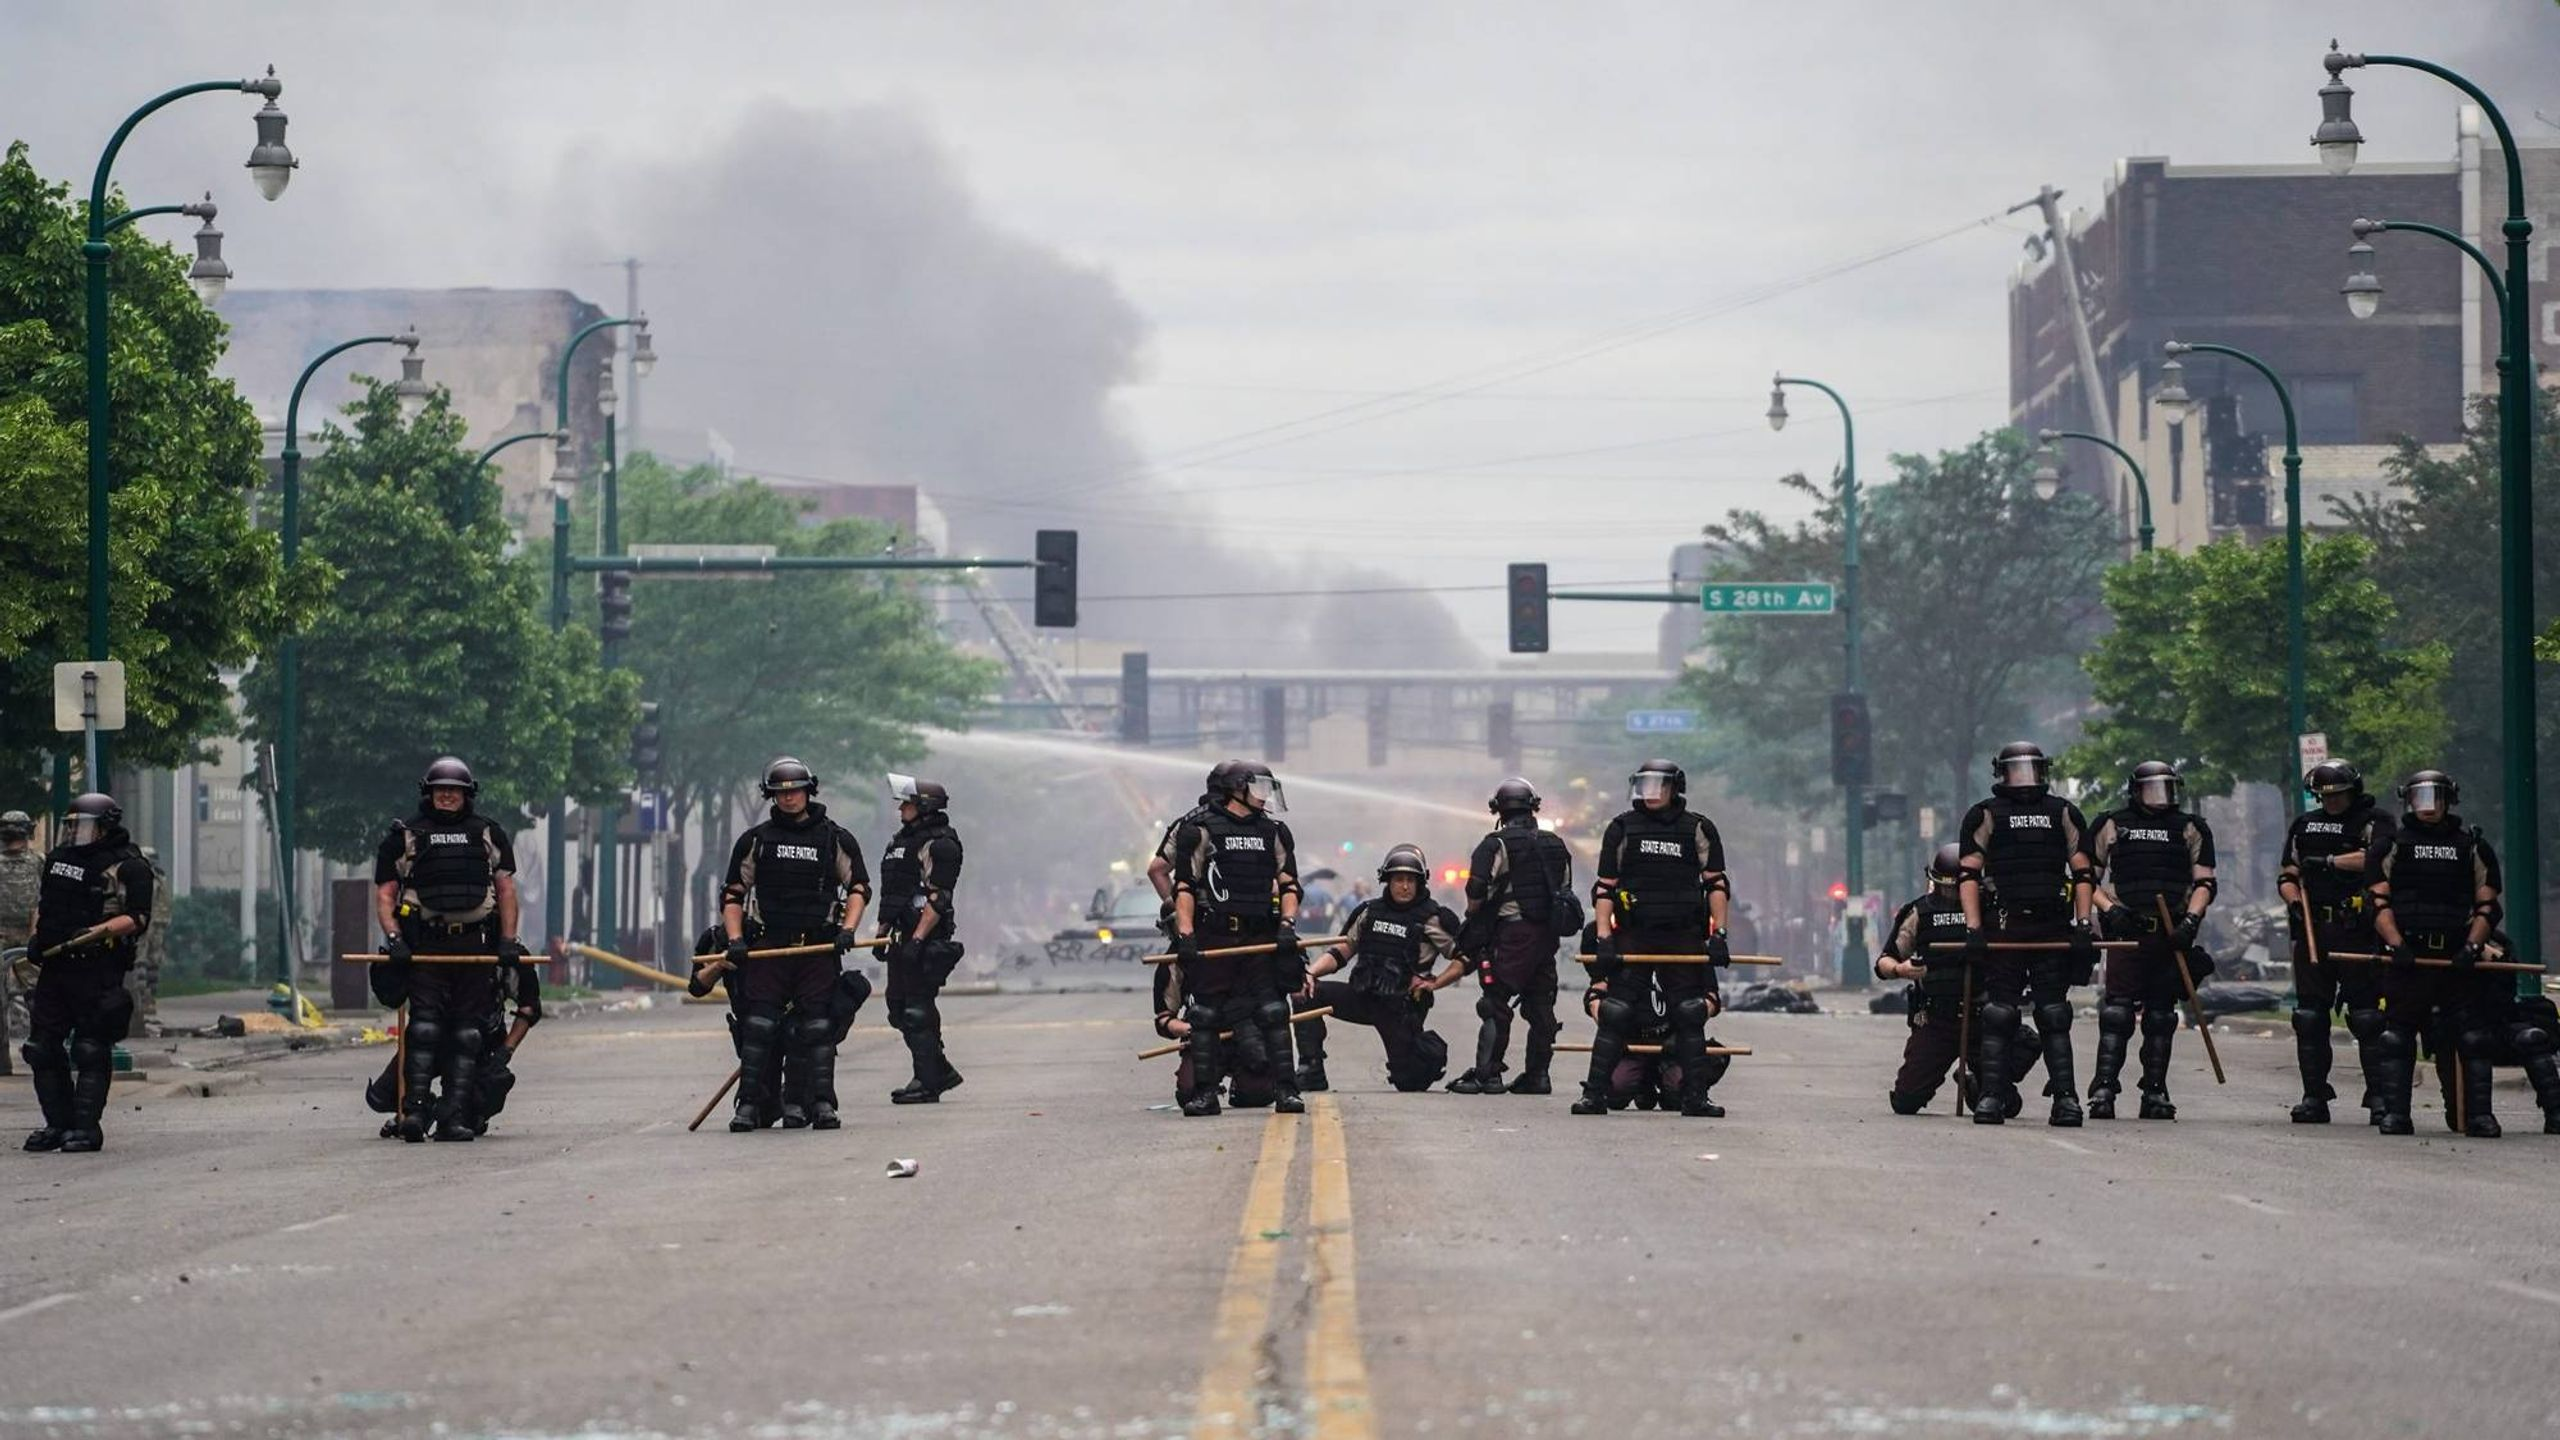 Riot police form a line on a Minneapolis street